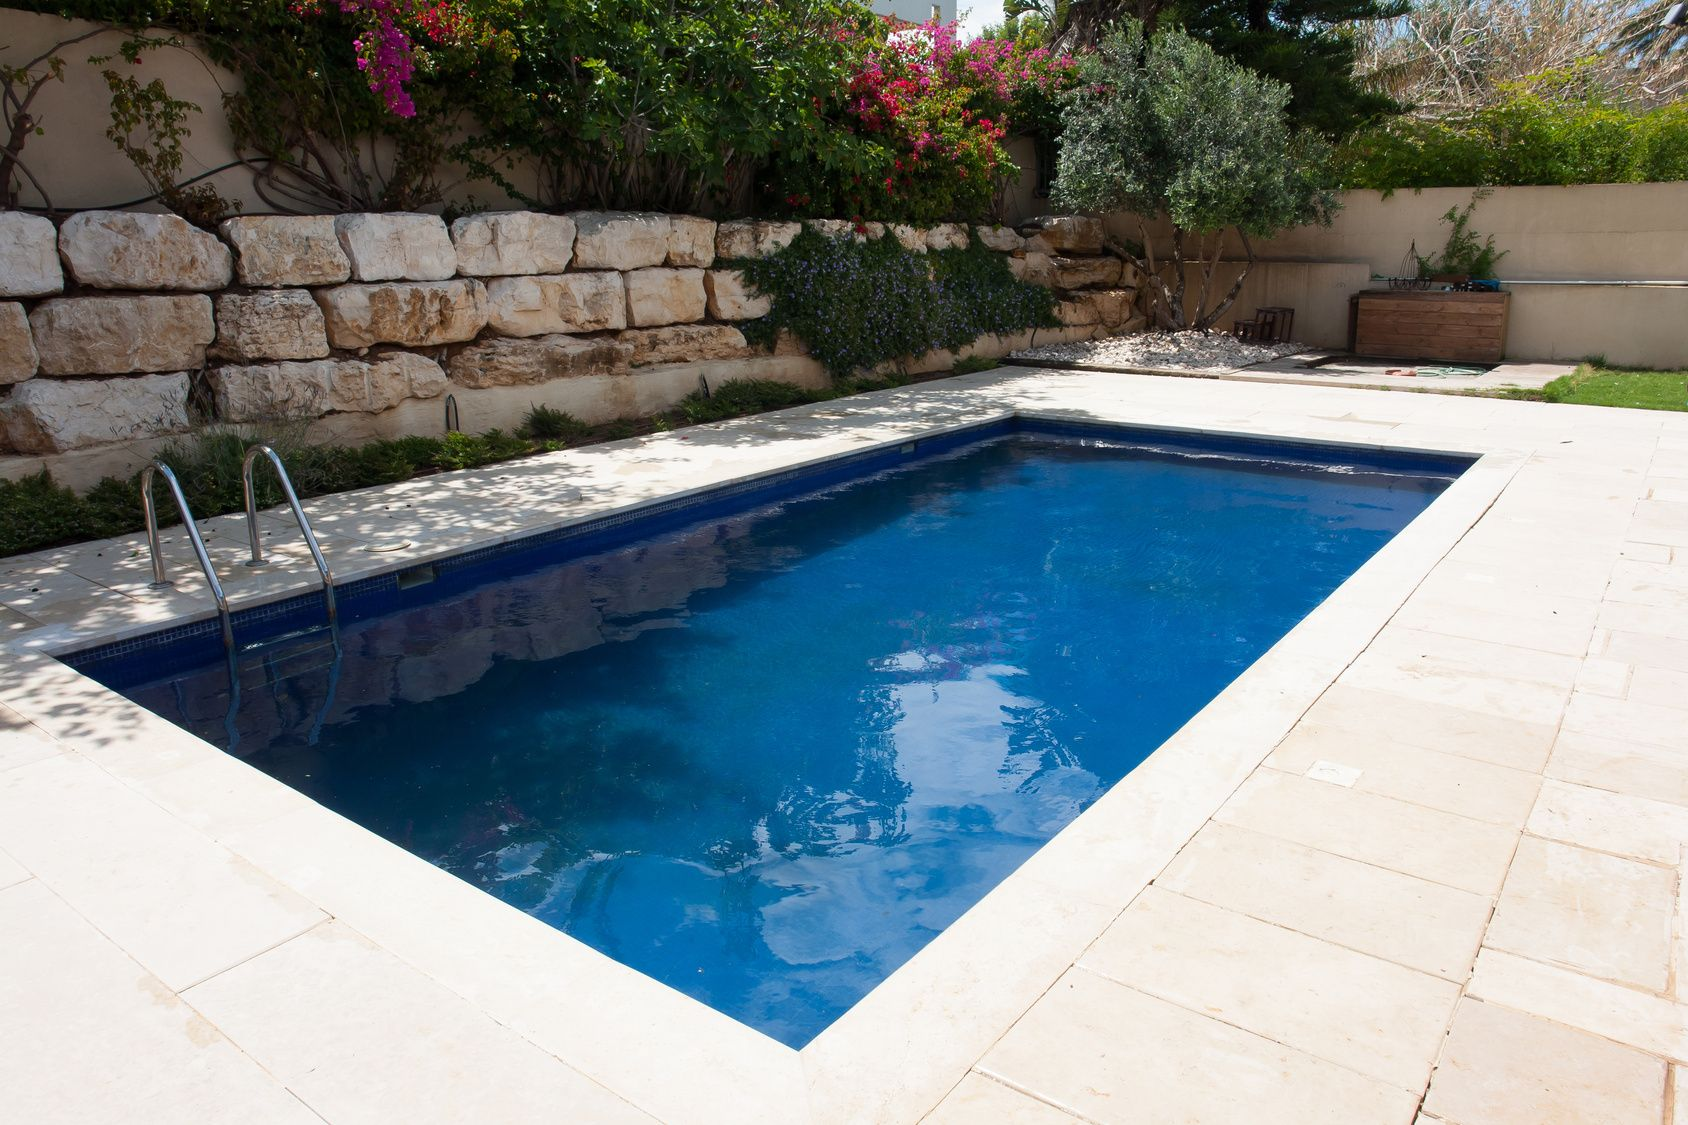 Explore Small Backyard Pools, Modern Backyard, and more!